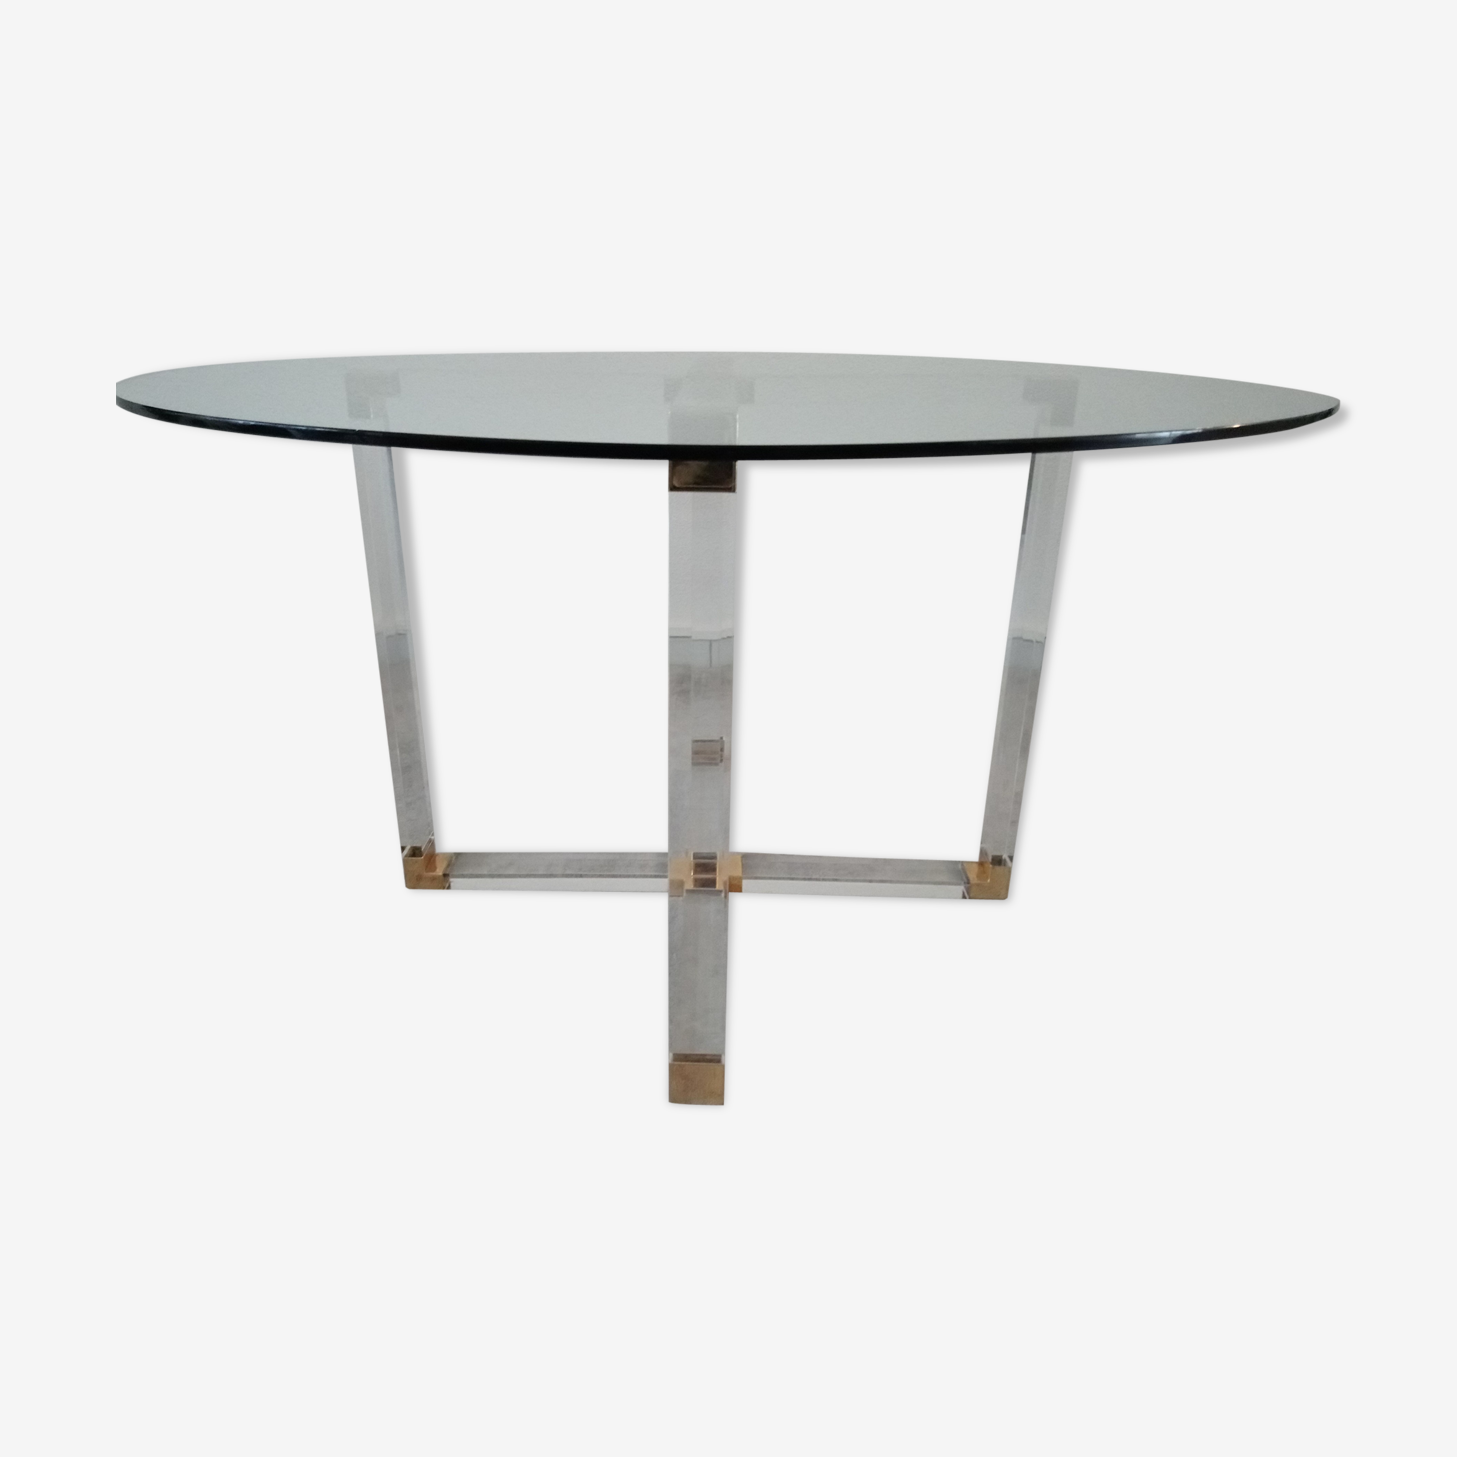 Dining table in lucite and Italian design glass for Metalarte from the 70s